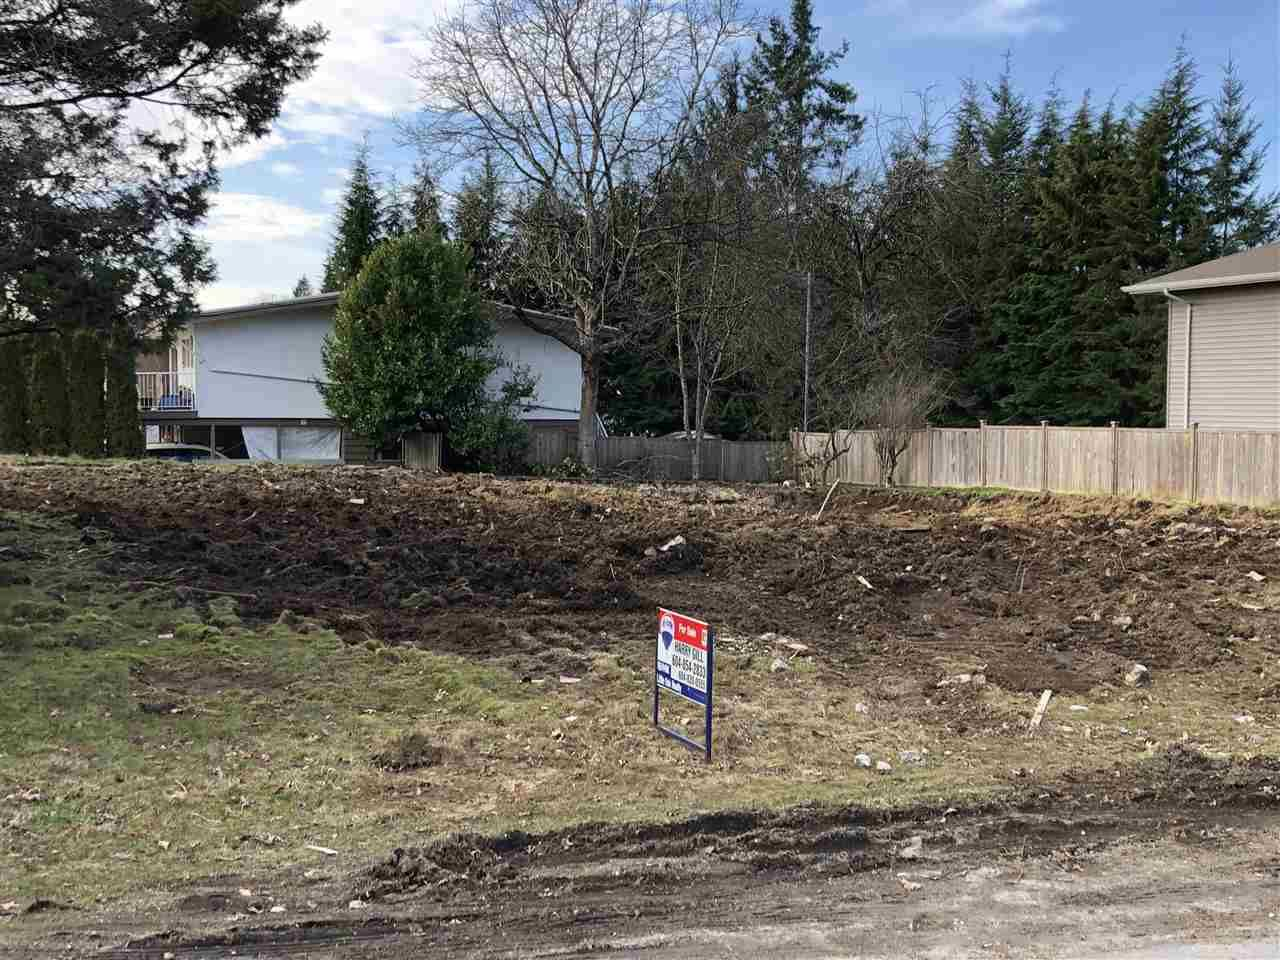 """Main Photo: 32943 6TH Avenue in Mission: Mission BC Land for sale in """"Mission Secondary"""" : MLS®# R2336385"""